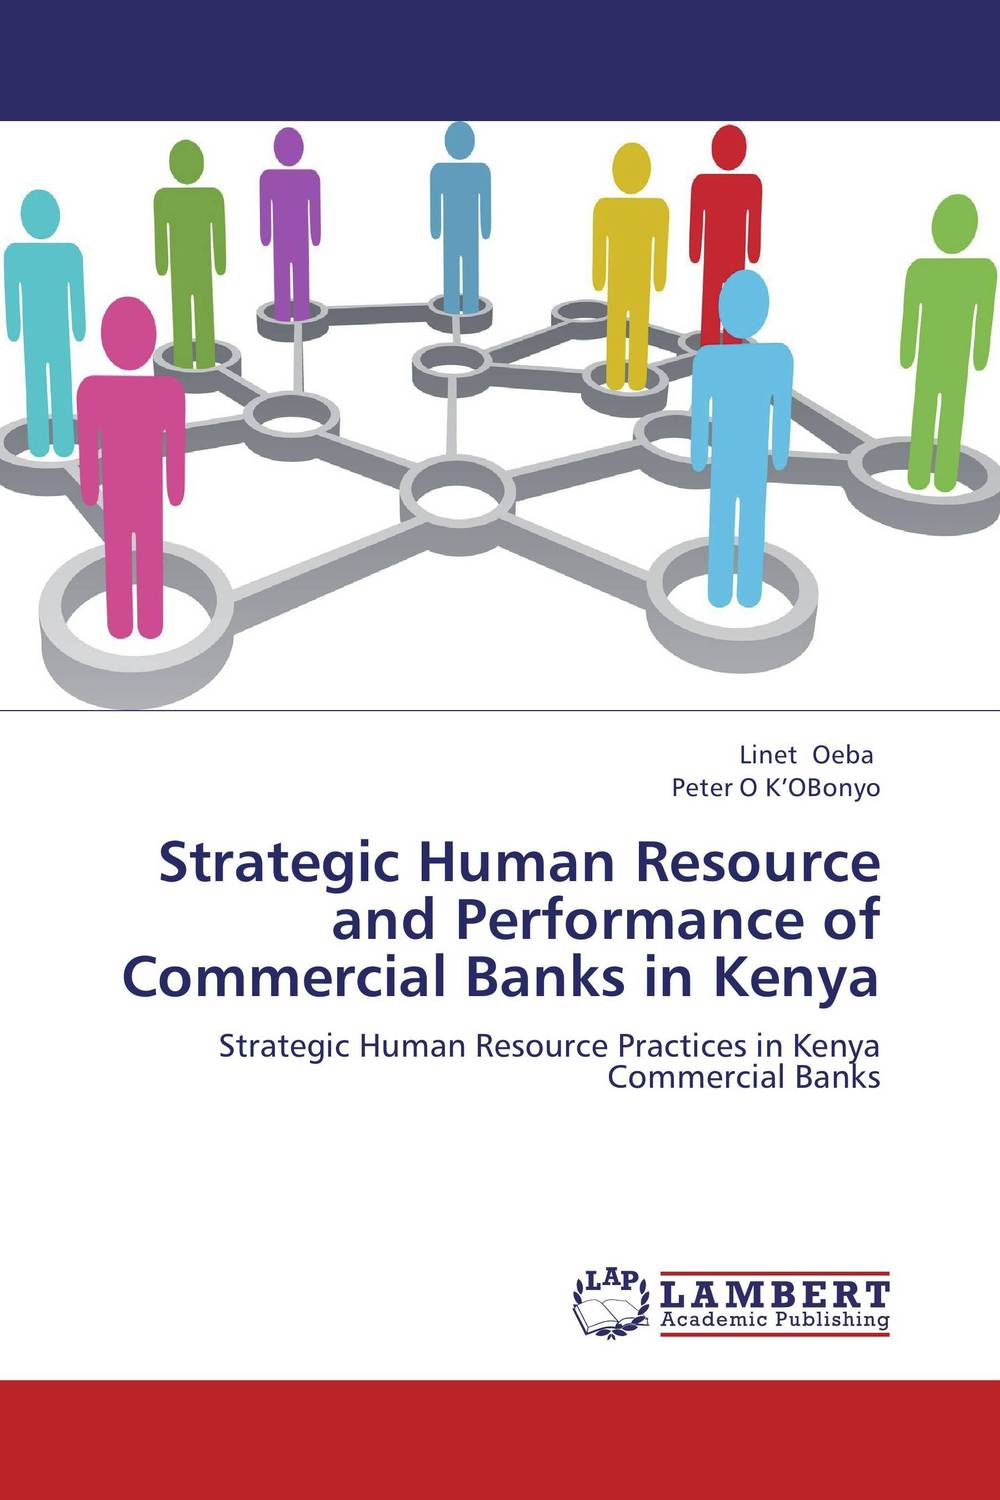 Strategic Human Resource and Performance of Commercial Banks in Kenya valentina munteanu human resources management in the commercial field of companies